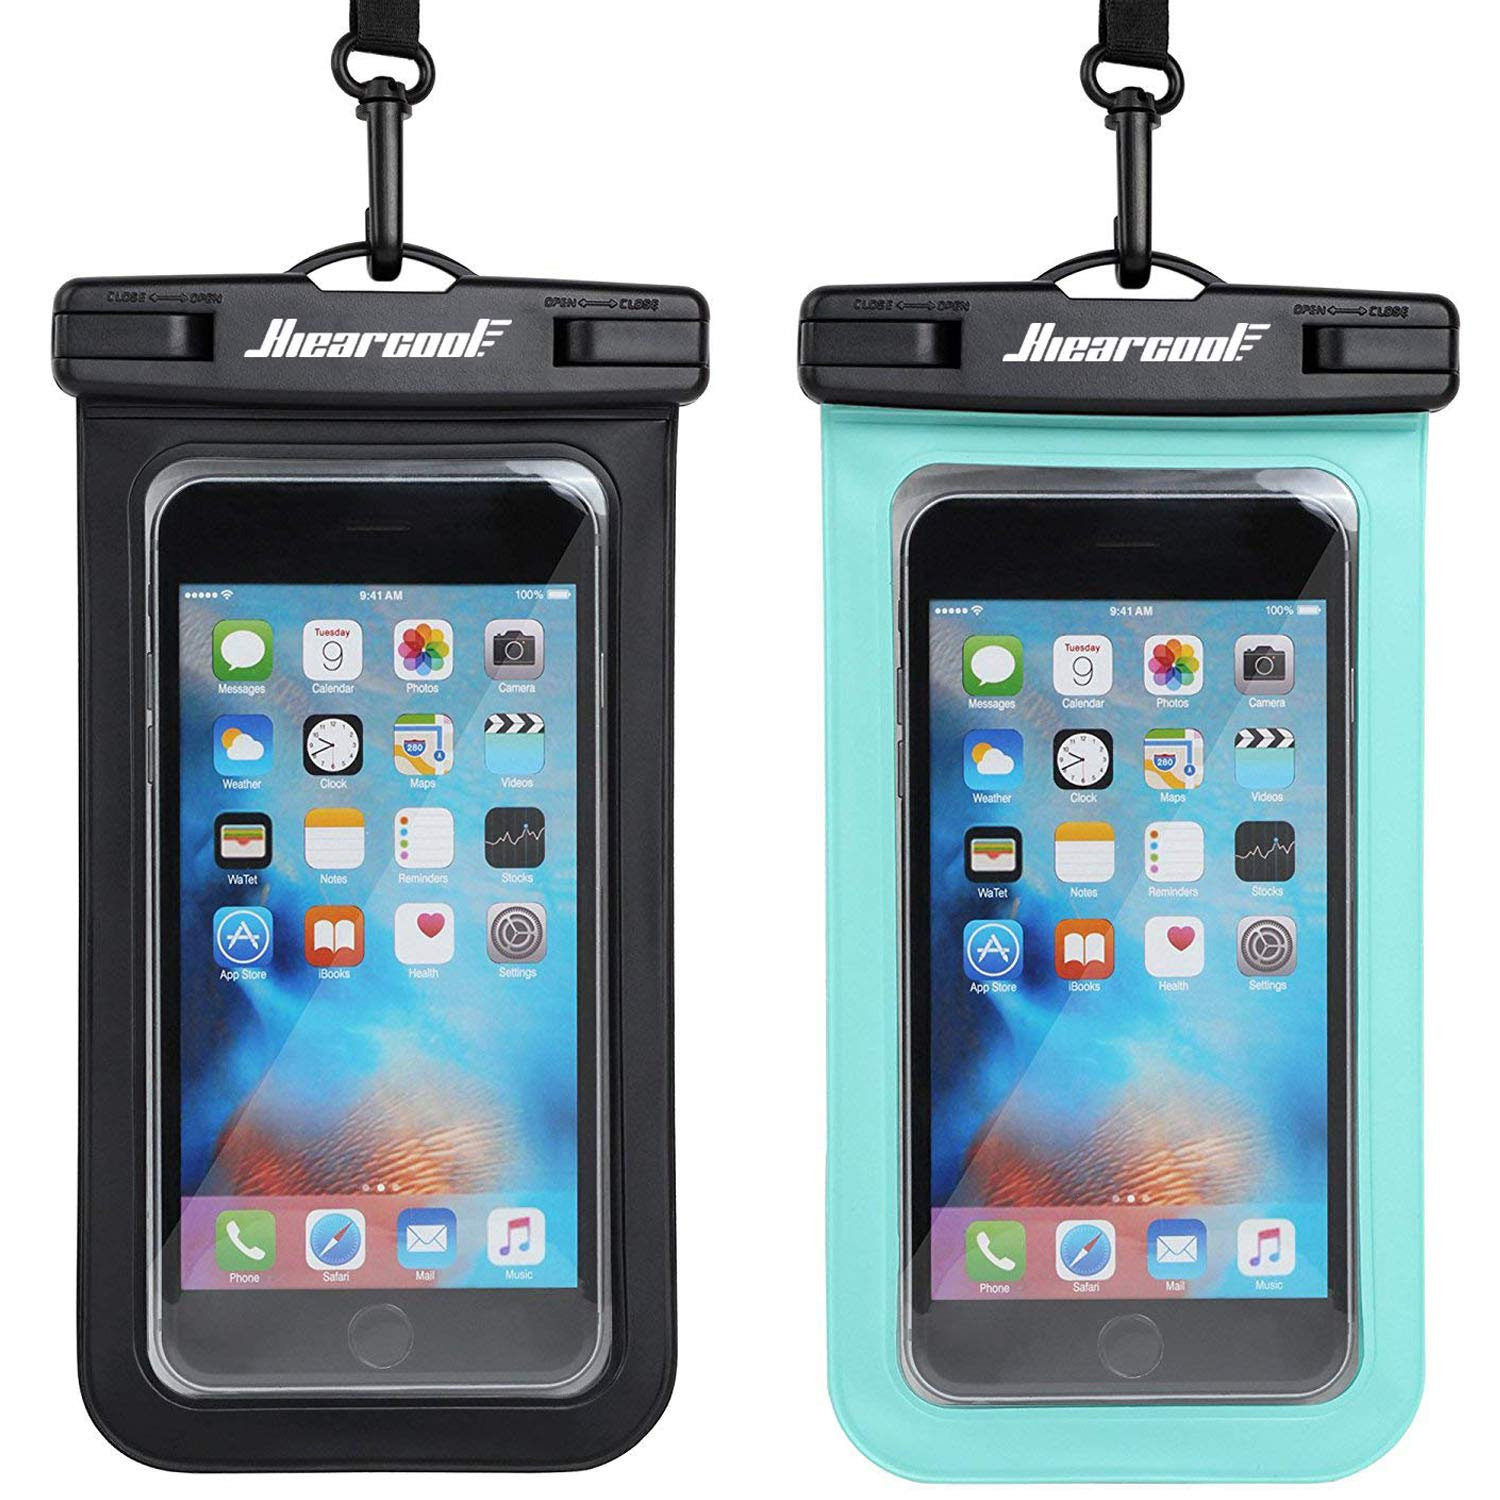 Universal Waterproof Case - Ansot IPX8 Waterproof Phone Pouch - Cellphone Dry Bag for iPhone X/8/ 8plus/7/7plus/6s/6/6s Plus Samsung Galaxy s8/s7 Google Pixel 2 HTC LG Sony Moto up to 7.0'' - 2 Pack by Hiearcool (Image #1)